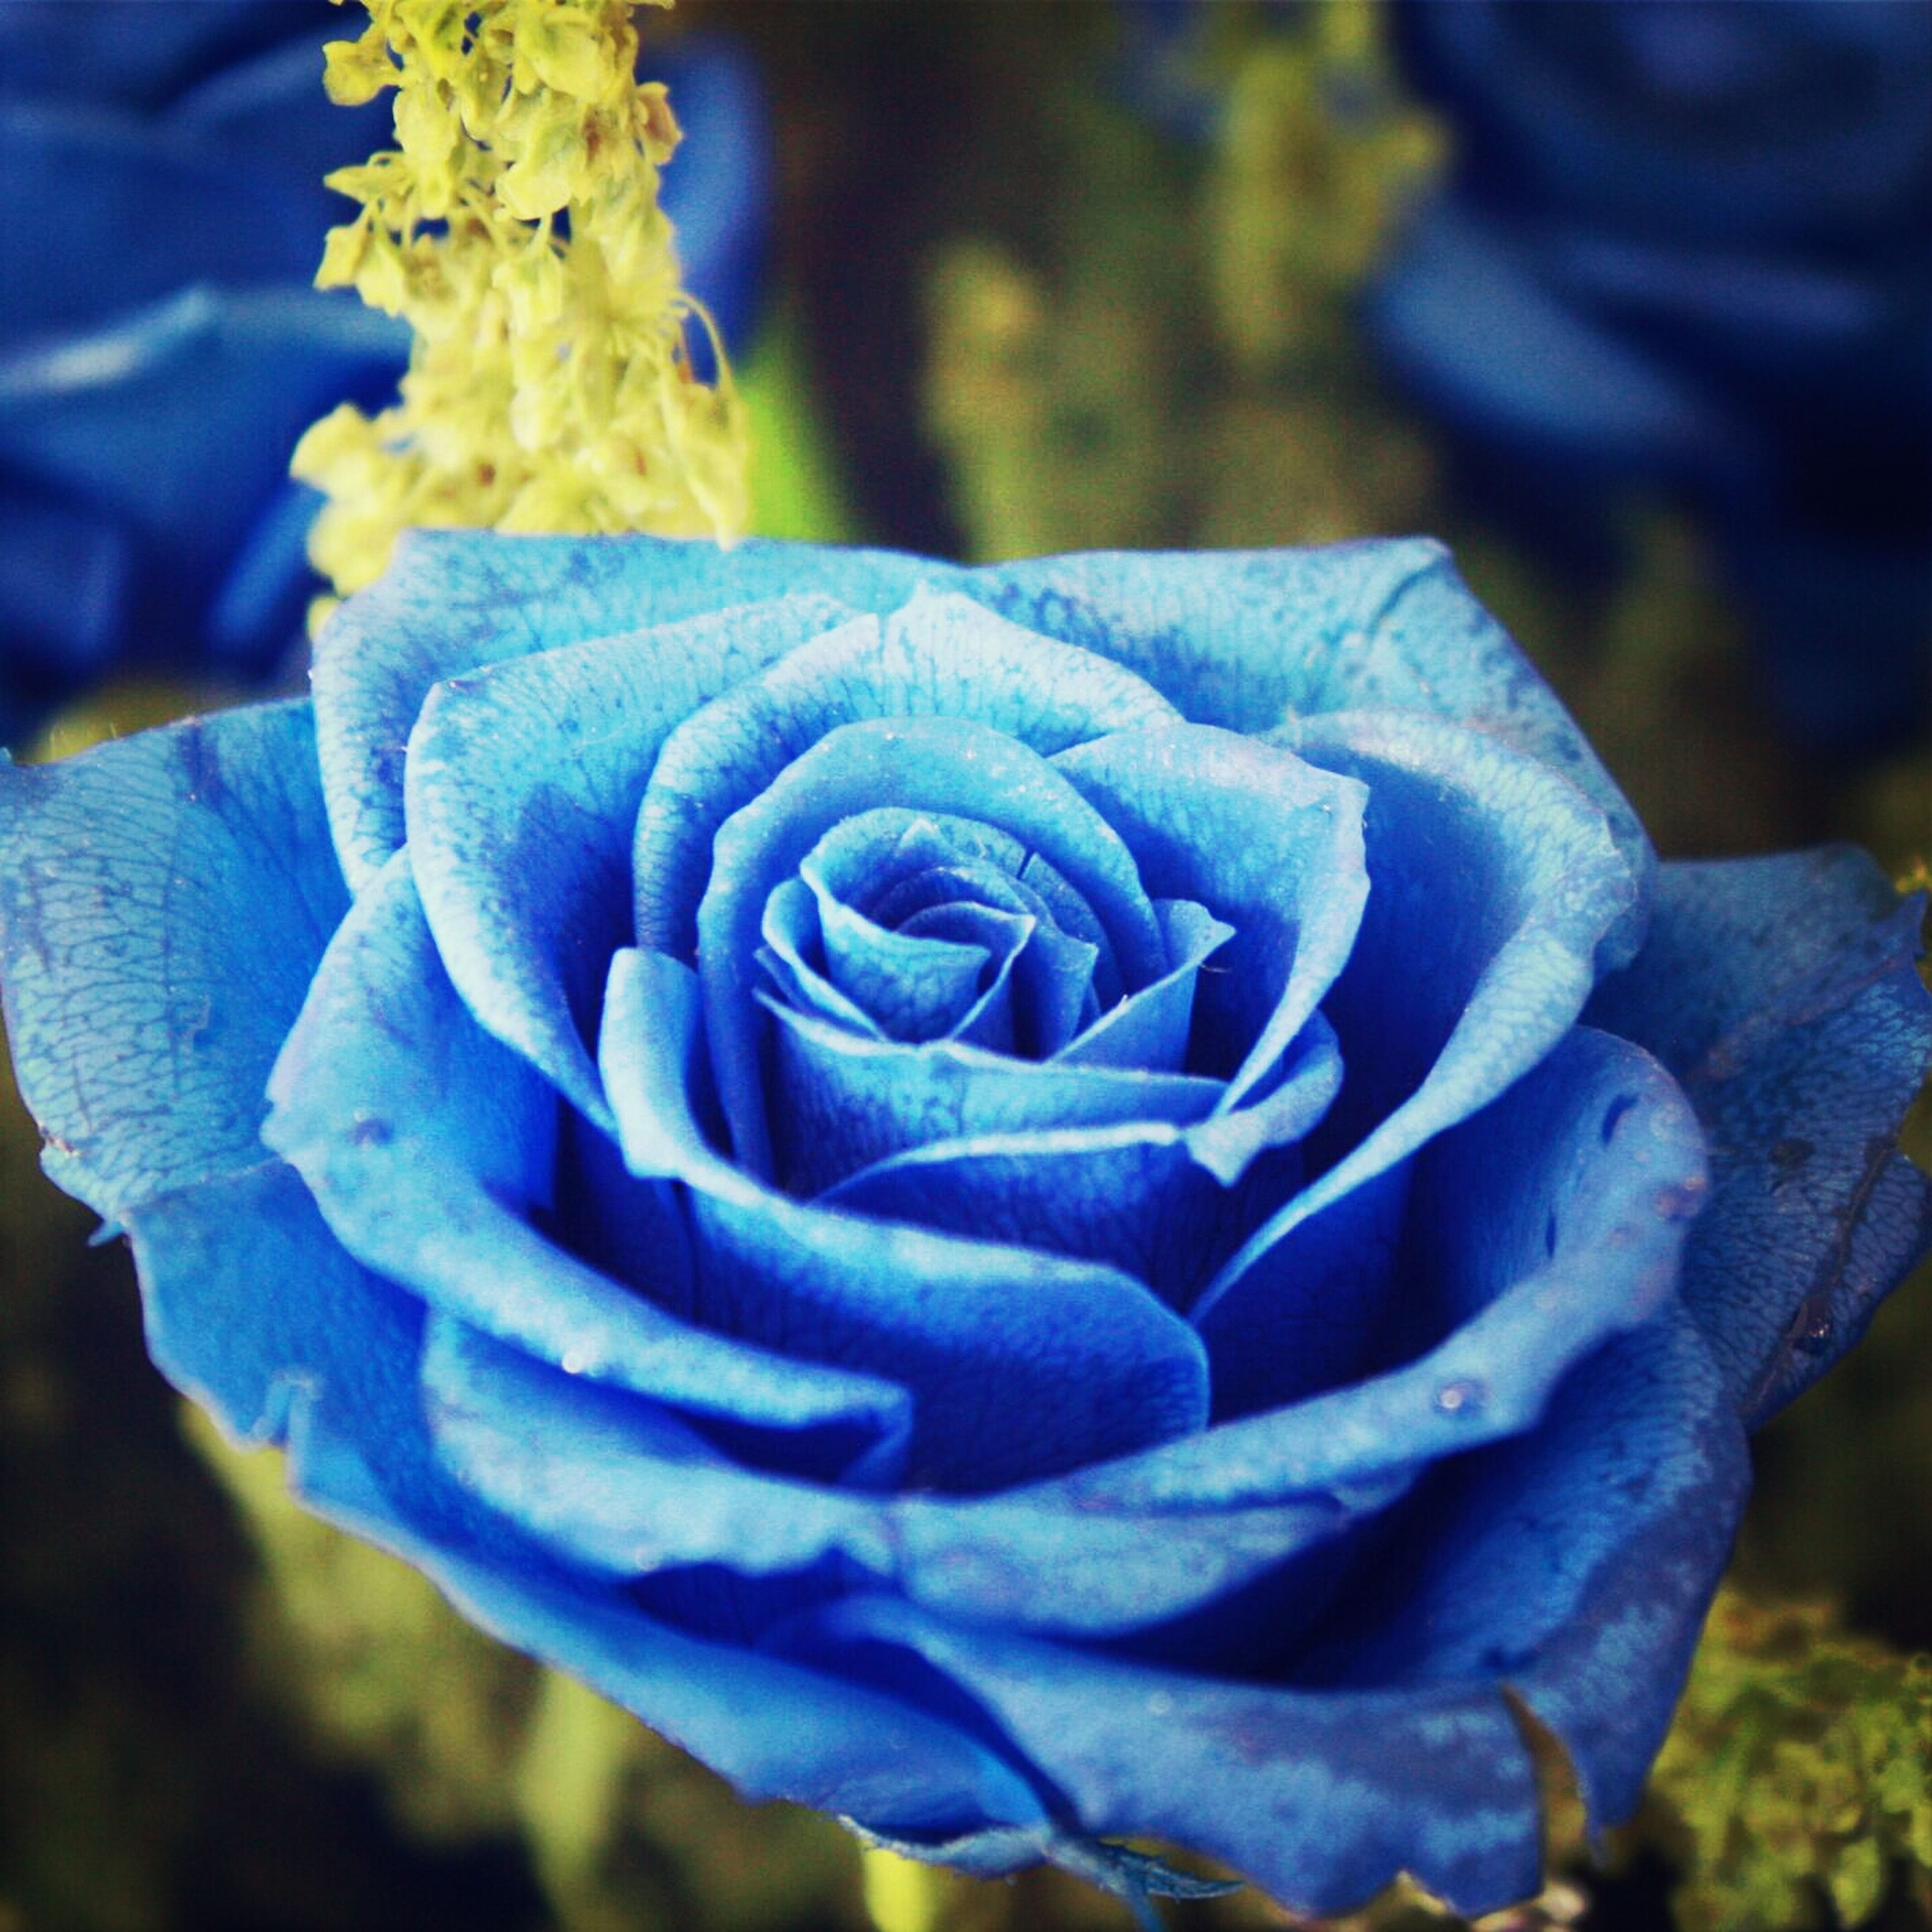 flower, petal, close-up, flower head, fragility, purple, focus on foreground, freshness, blue, growth, beauty in nature, plant, nature, single flower, blooming, outdoors, in bloom, no people, selective focus, day